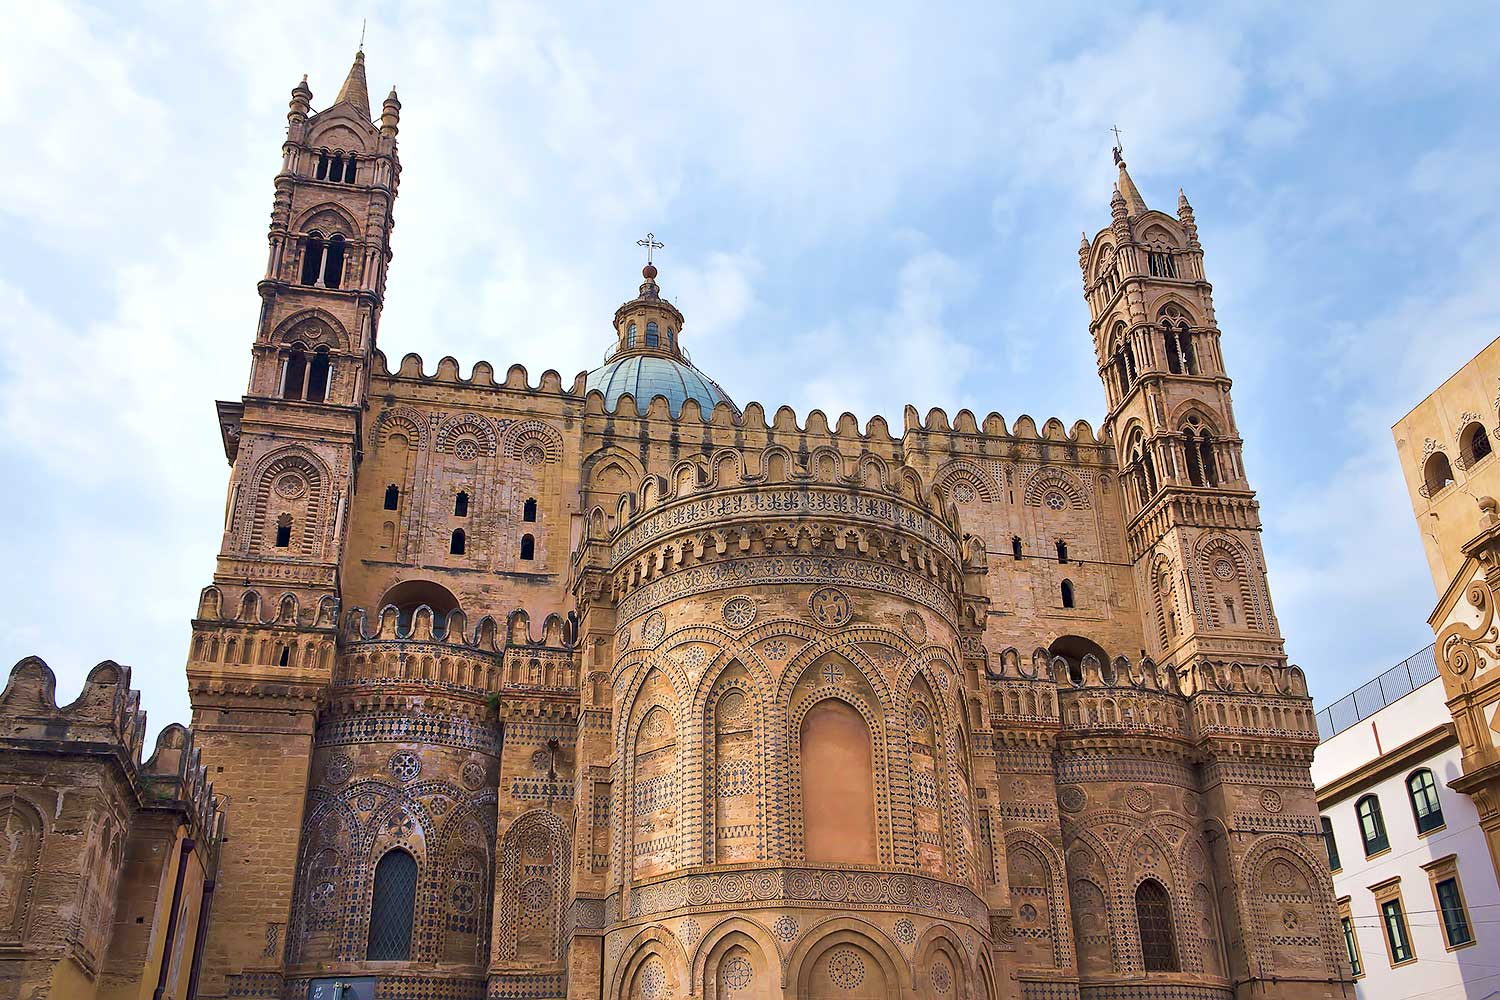 The beautifully preserved apse of the Cathedral of Palermo